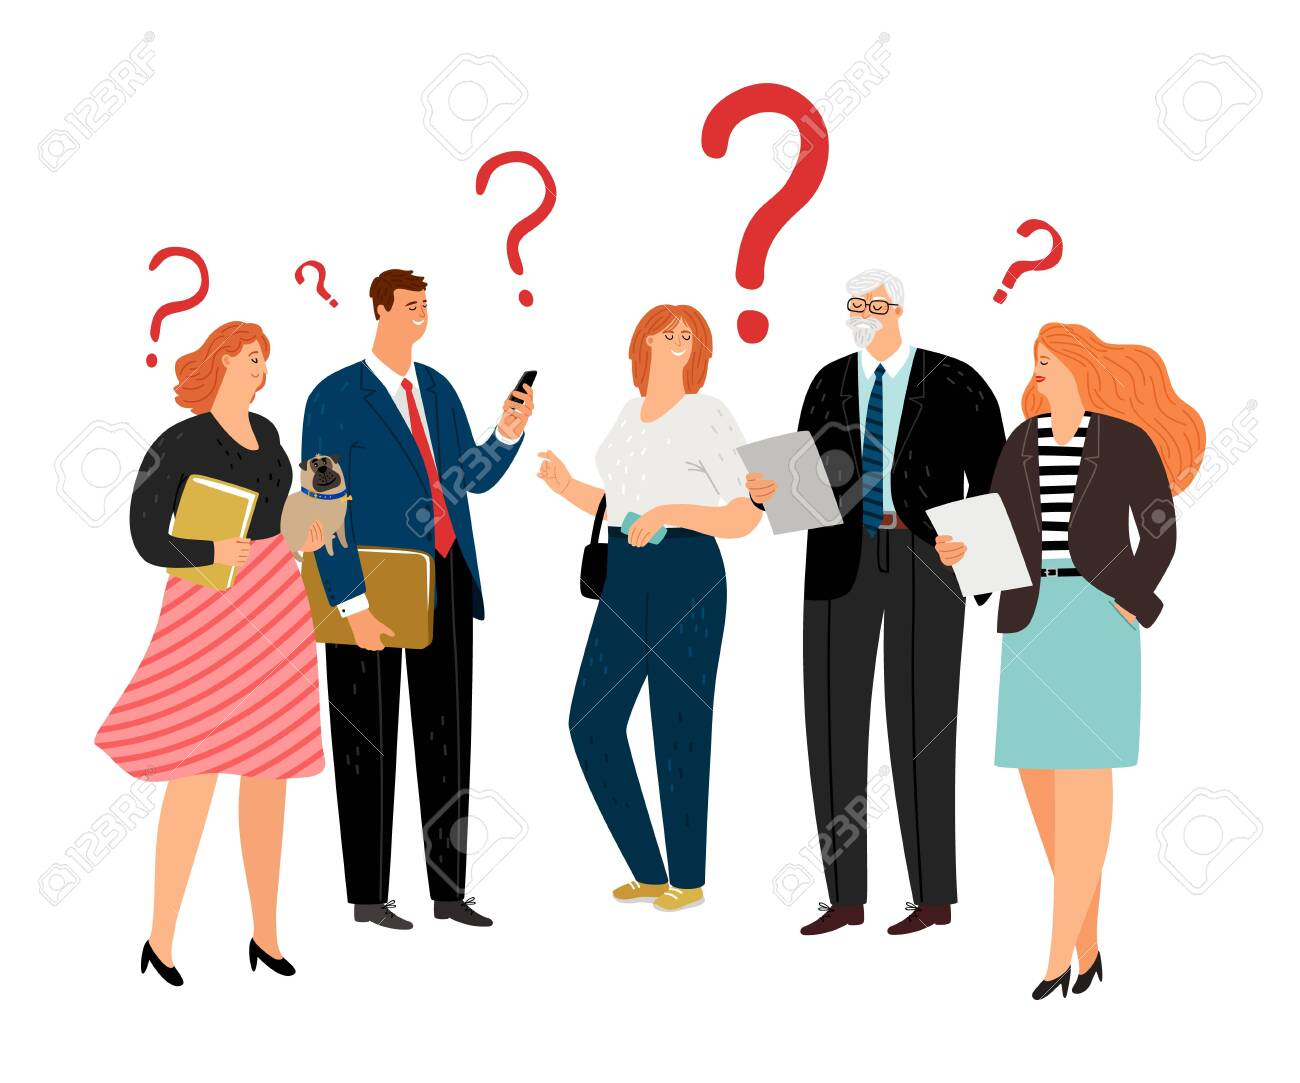 People have question. Question marks, different age business team vector characters - 132243580